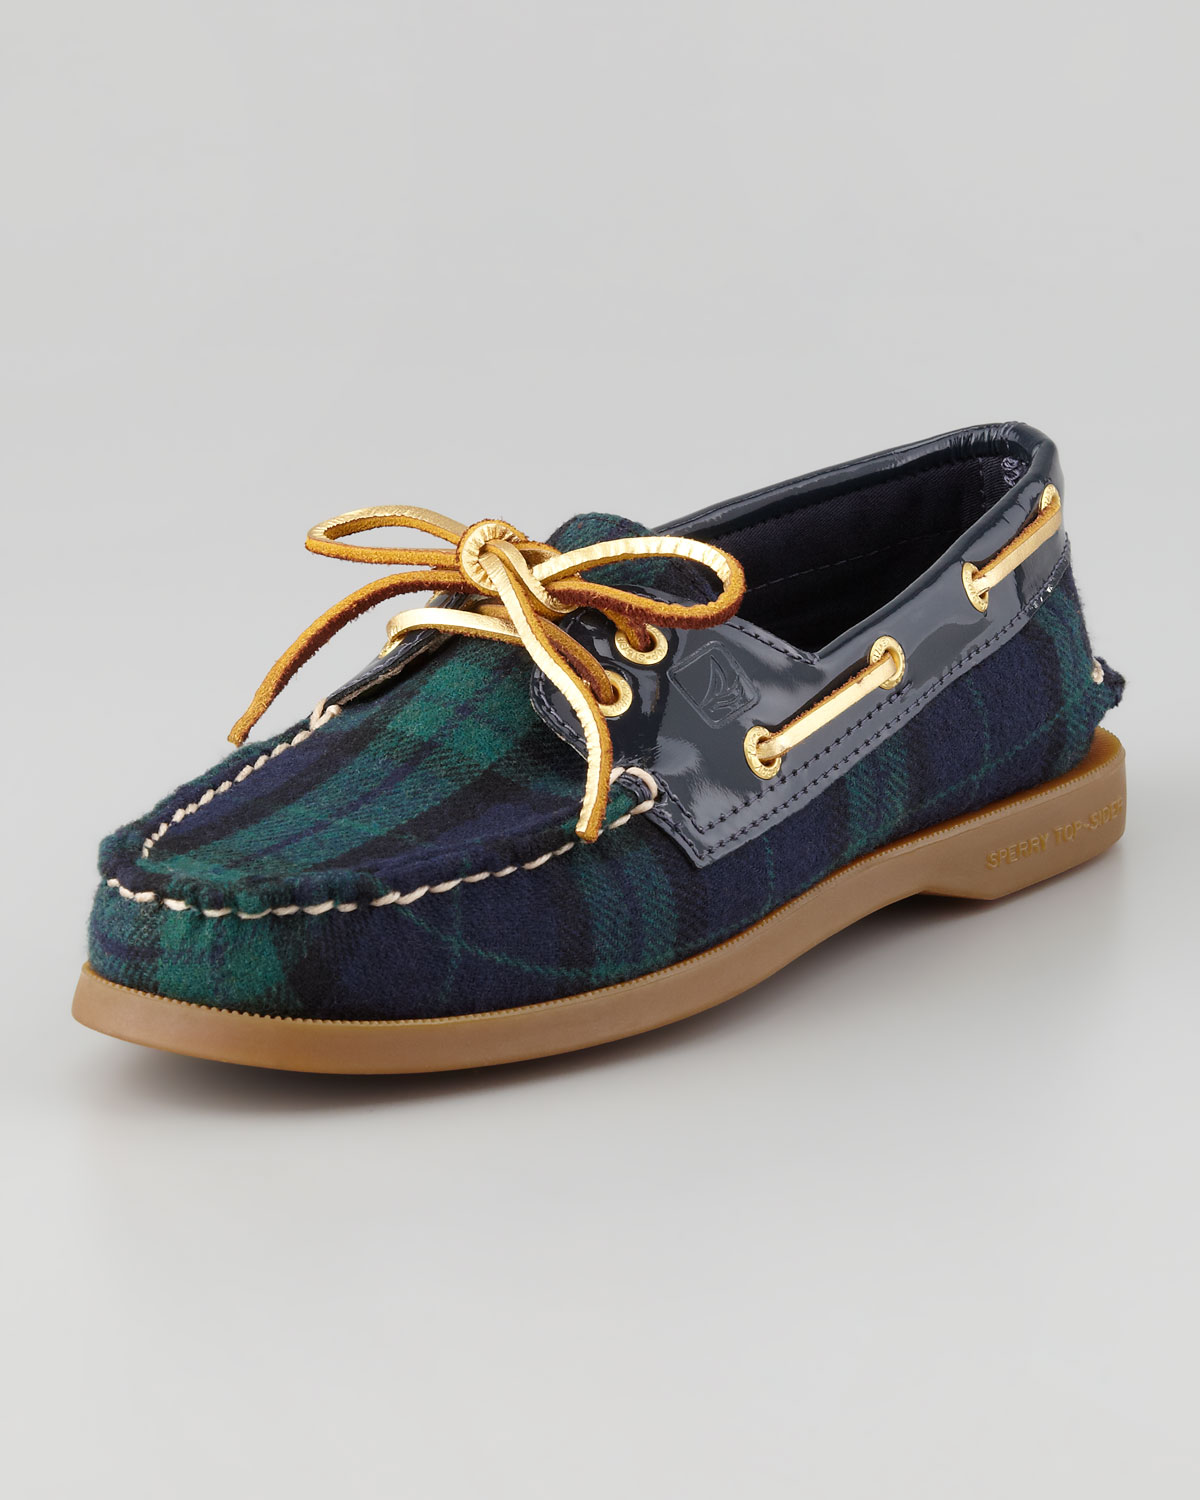 Navy Blue Sperry Boat Shoes